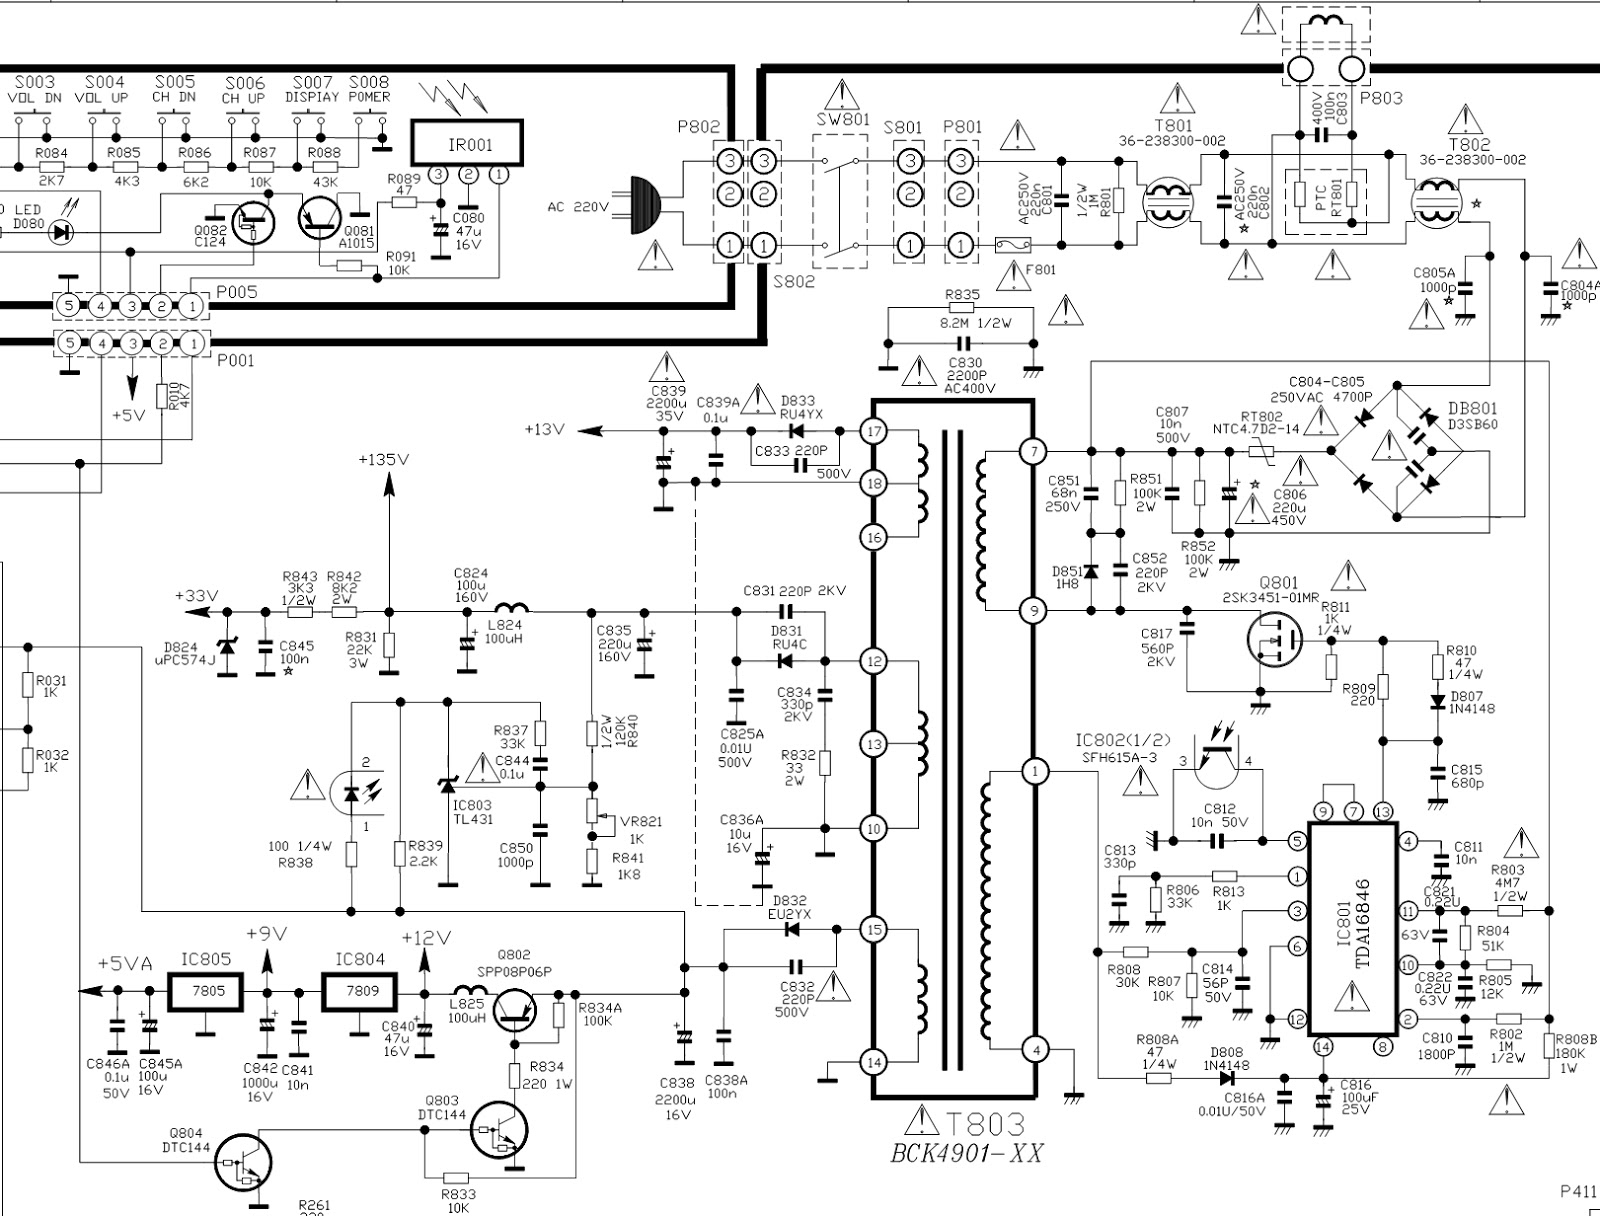 tcl mr-29tf 19rca - power supply schematic  smps